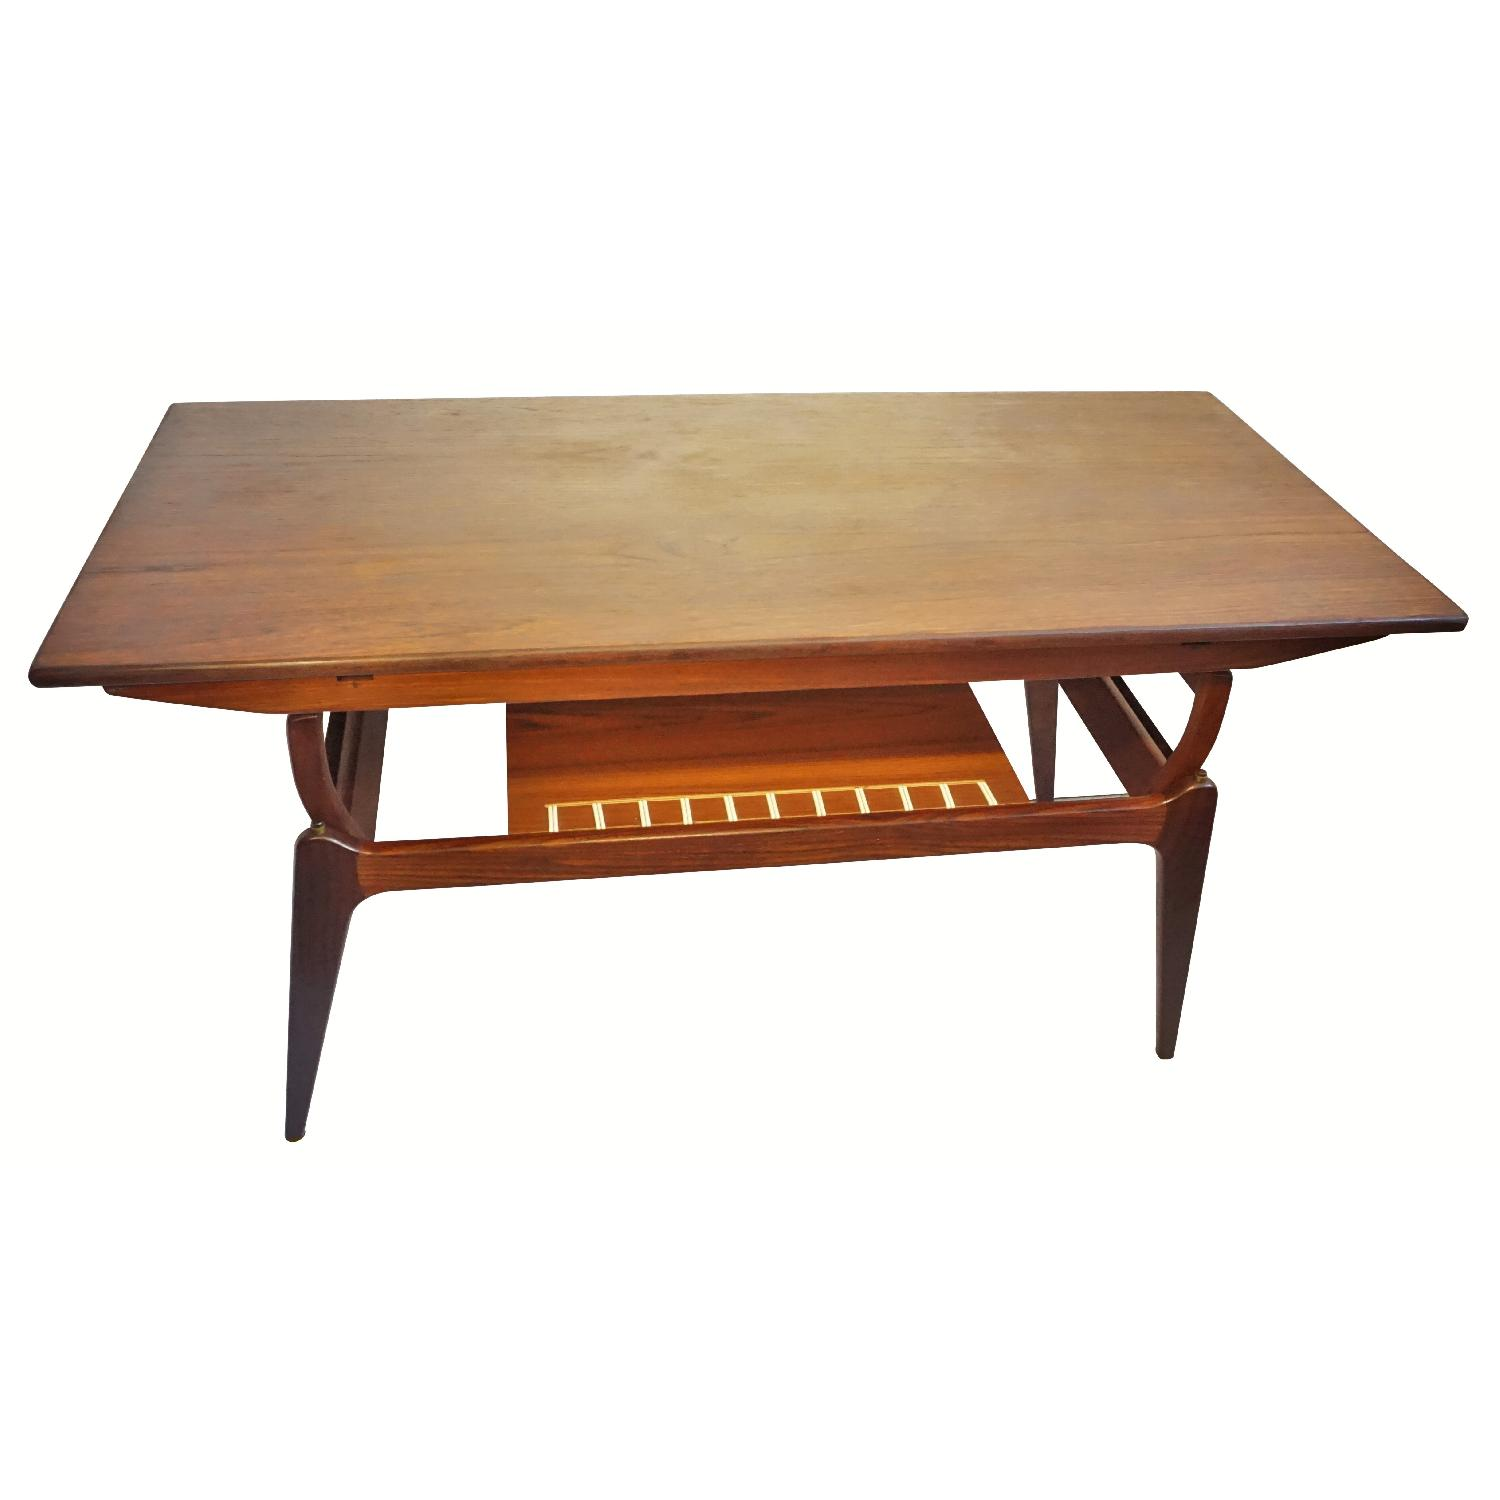 Copenhagen Coffee/Dining table - image-0